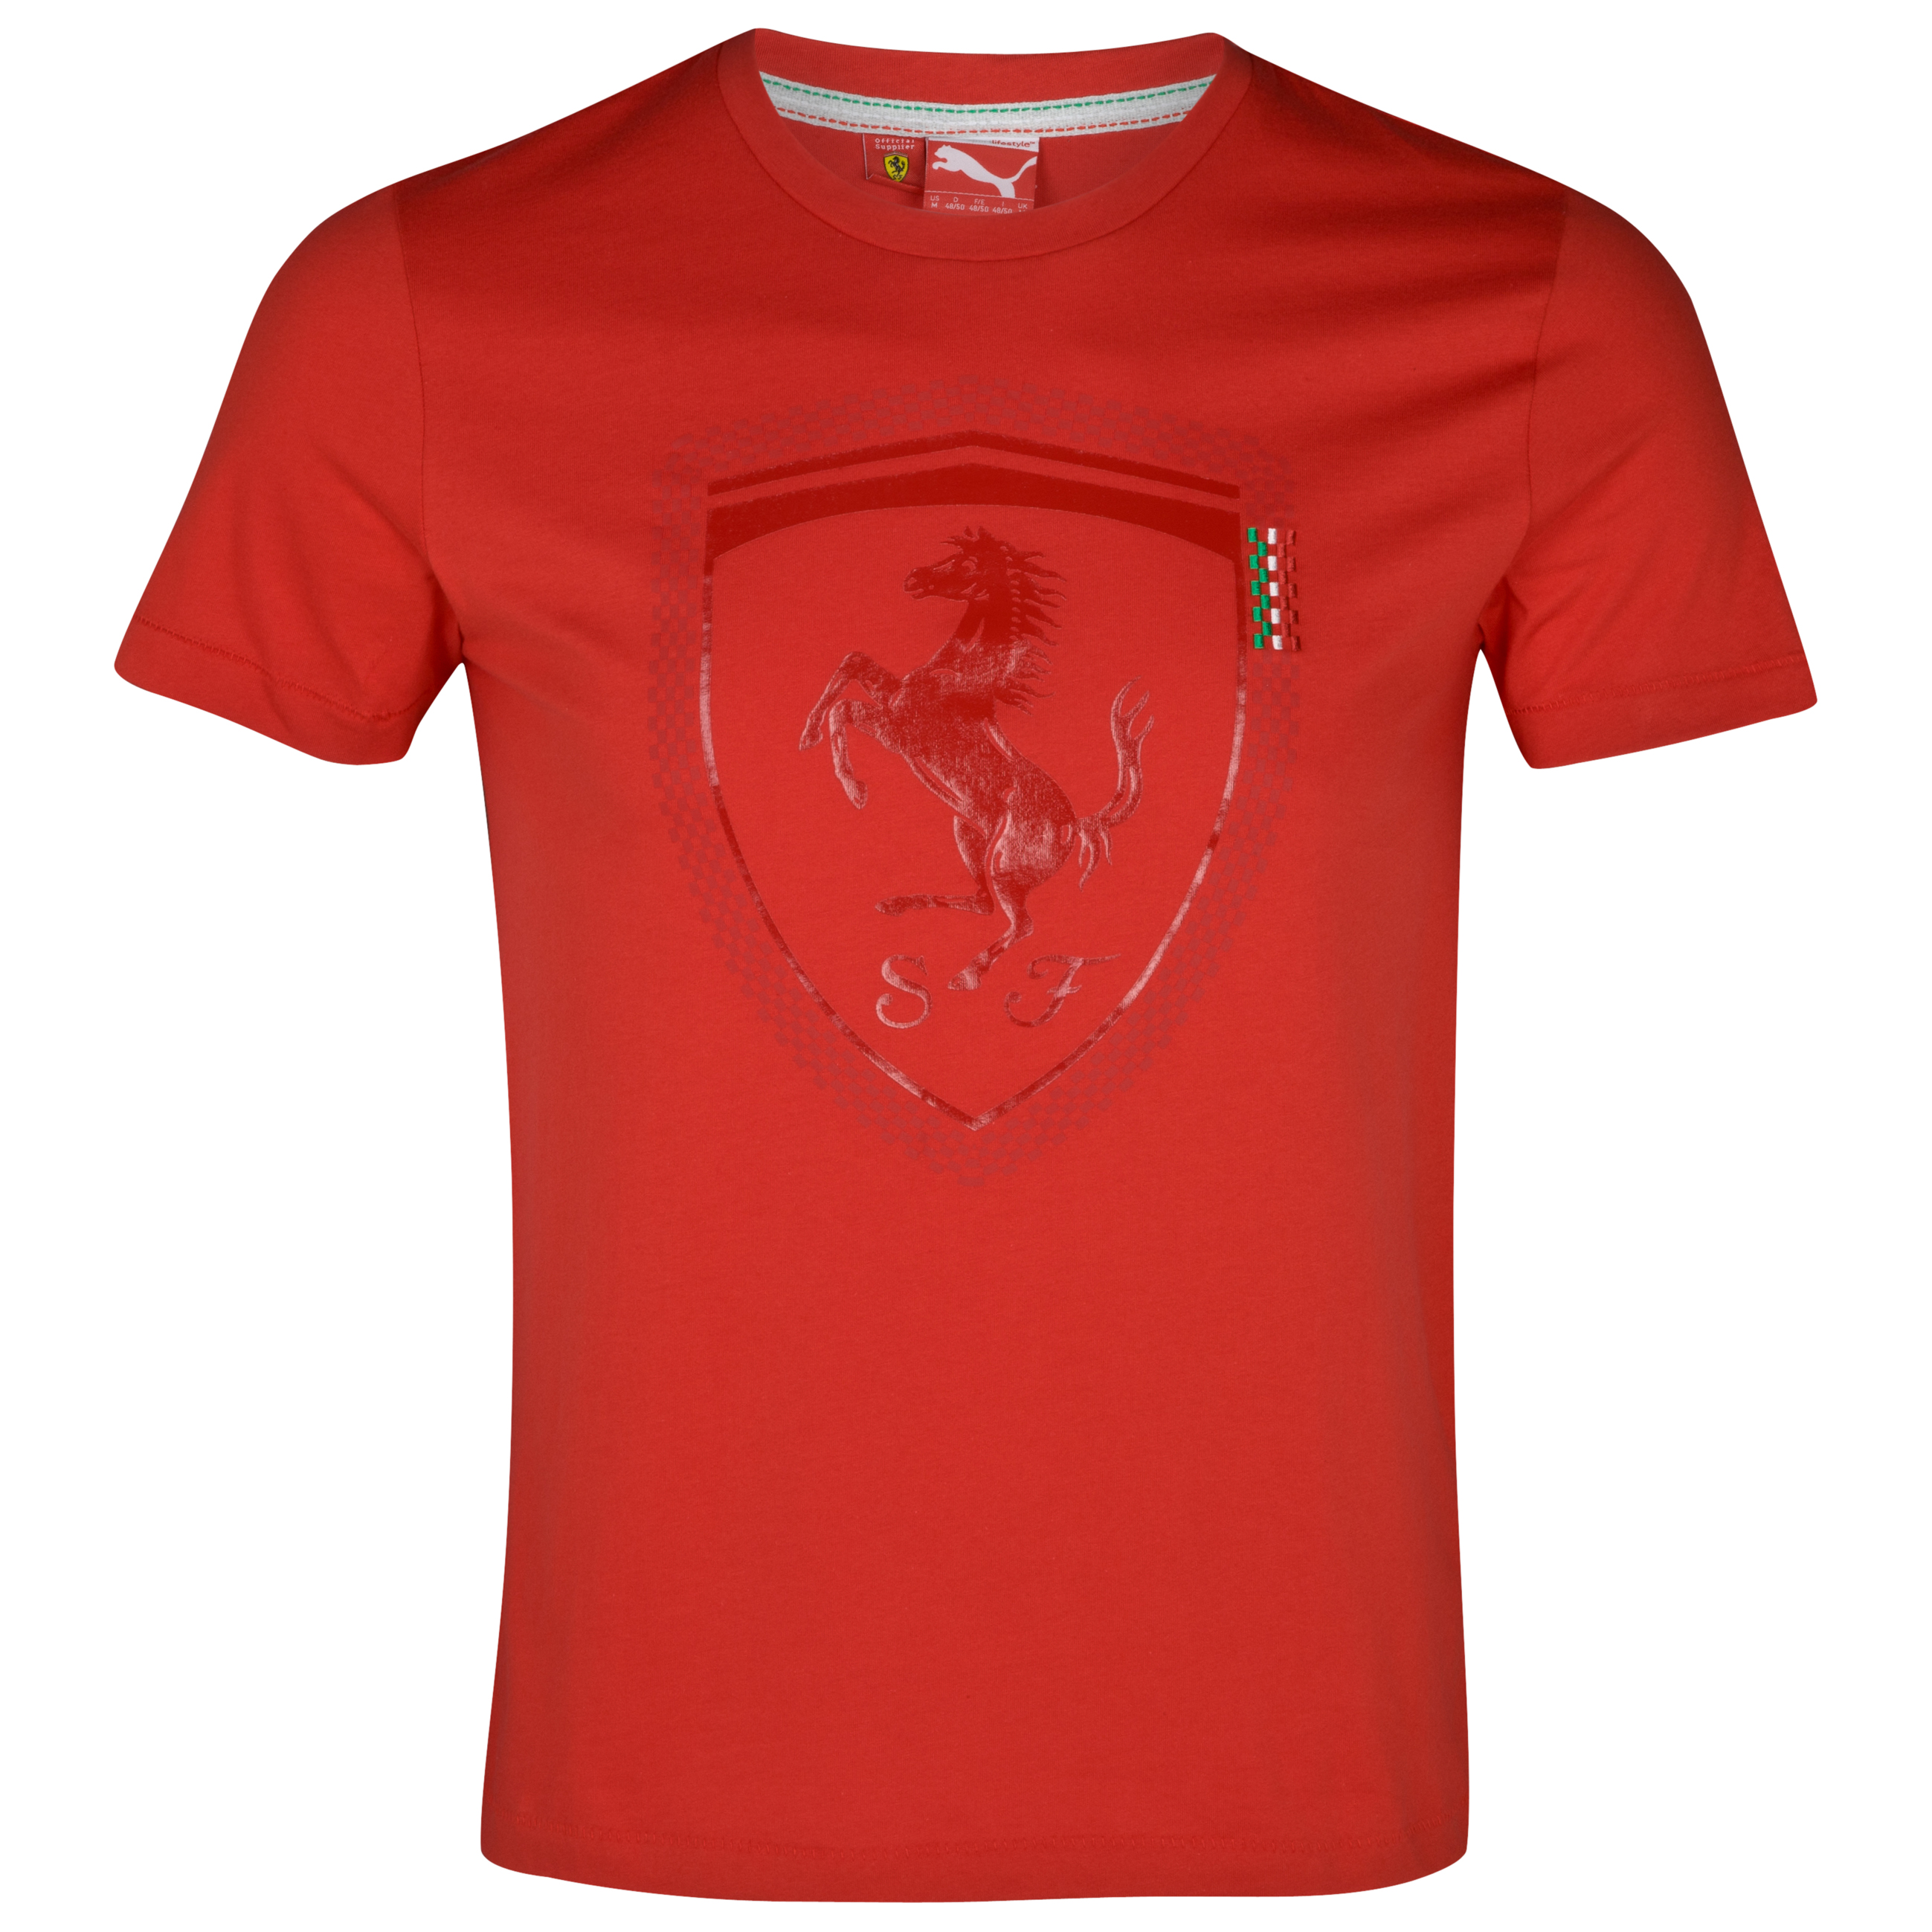 Scuderia Ferrari 2012 Logo T-Shirt - Rosso Corsa